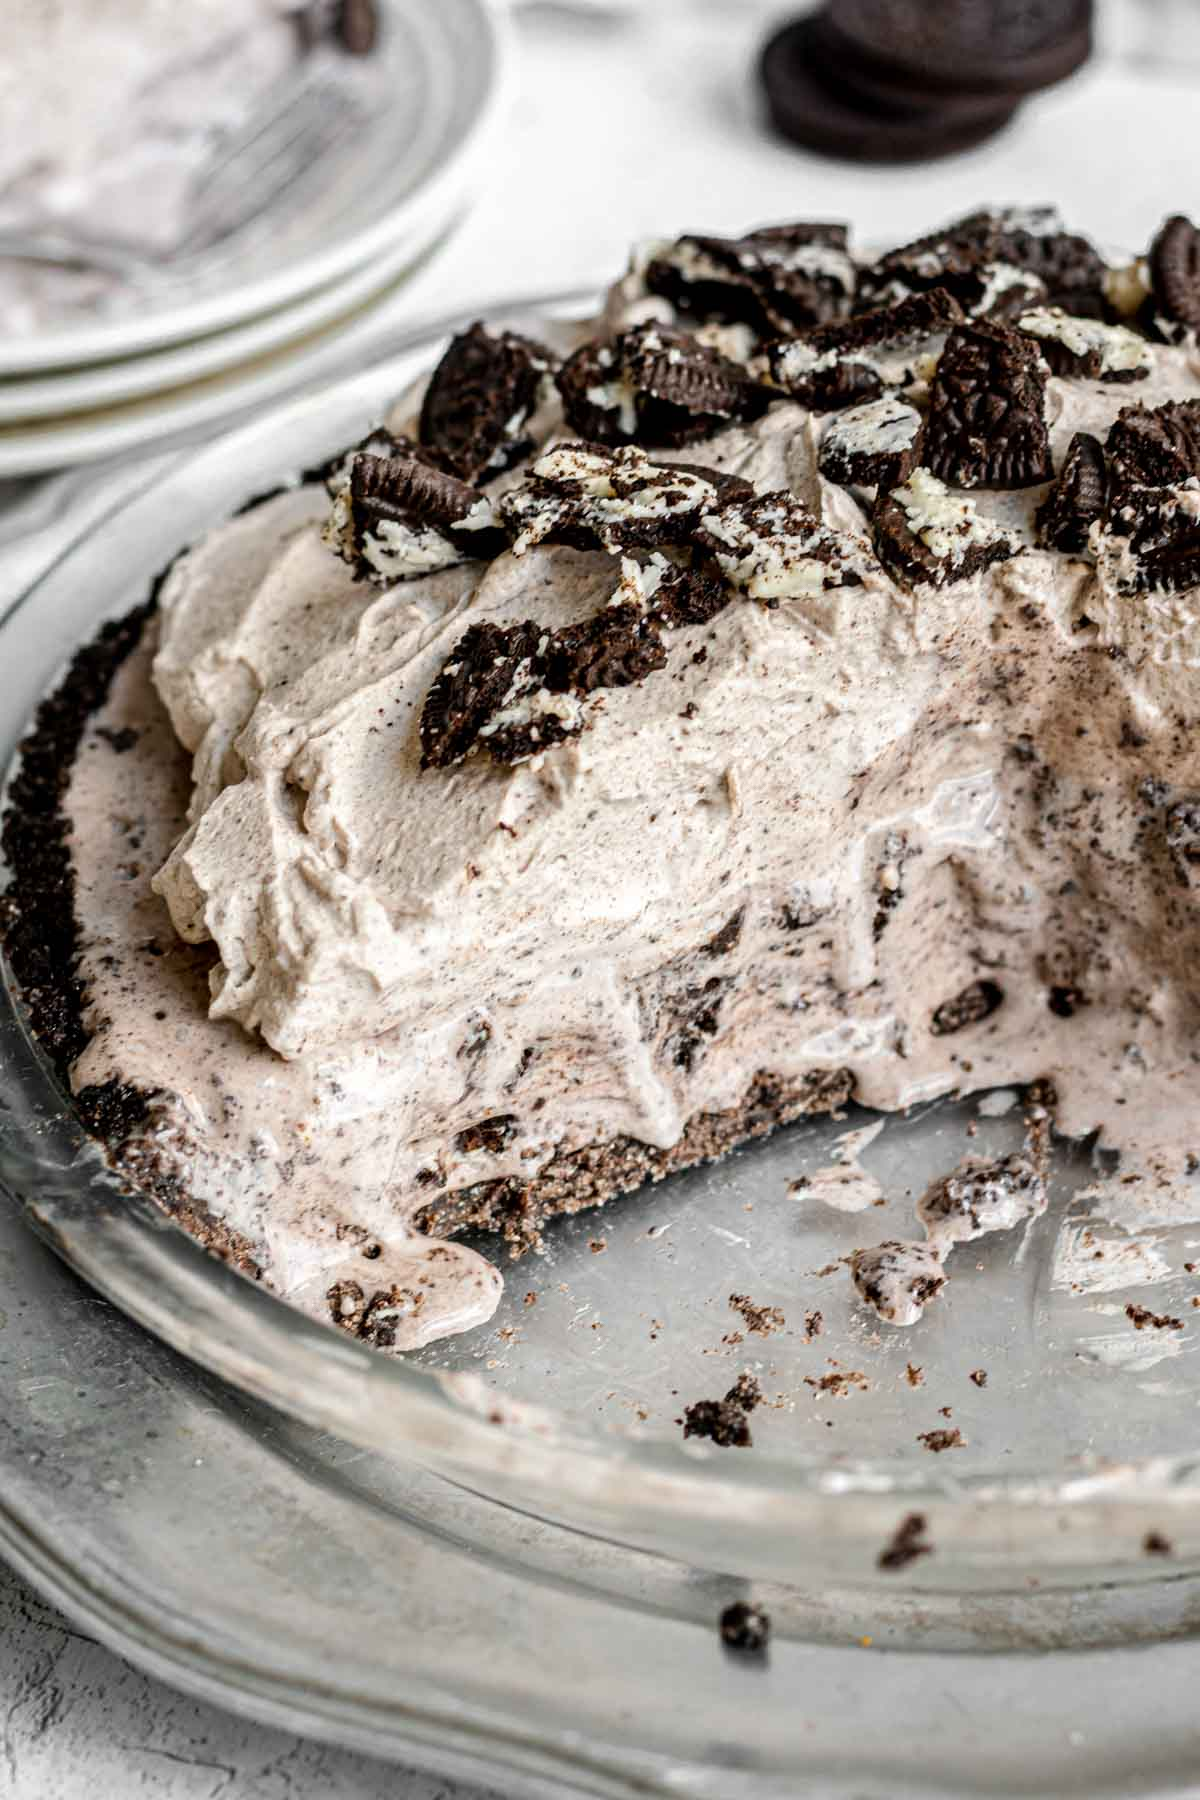 Oreo Ice Cream Pie garnished with whipped cream and oreo pieces in pie plate with slice cut out